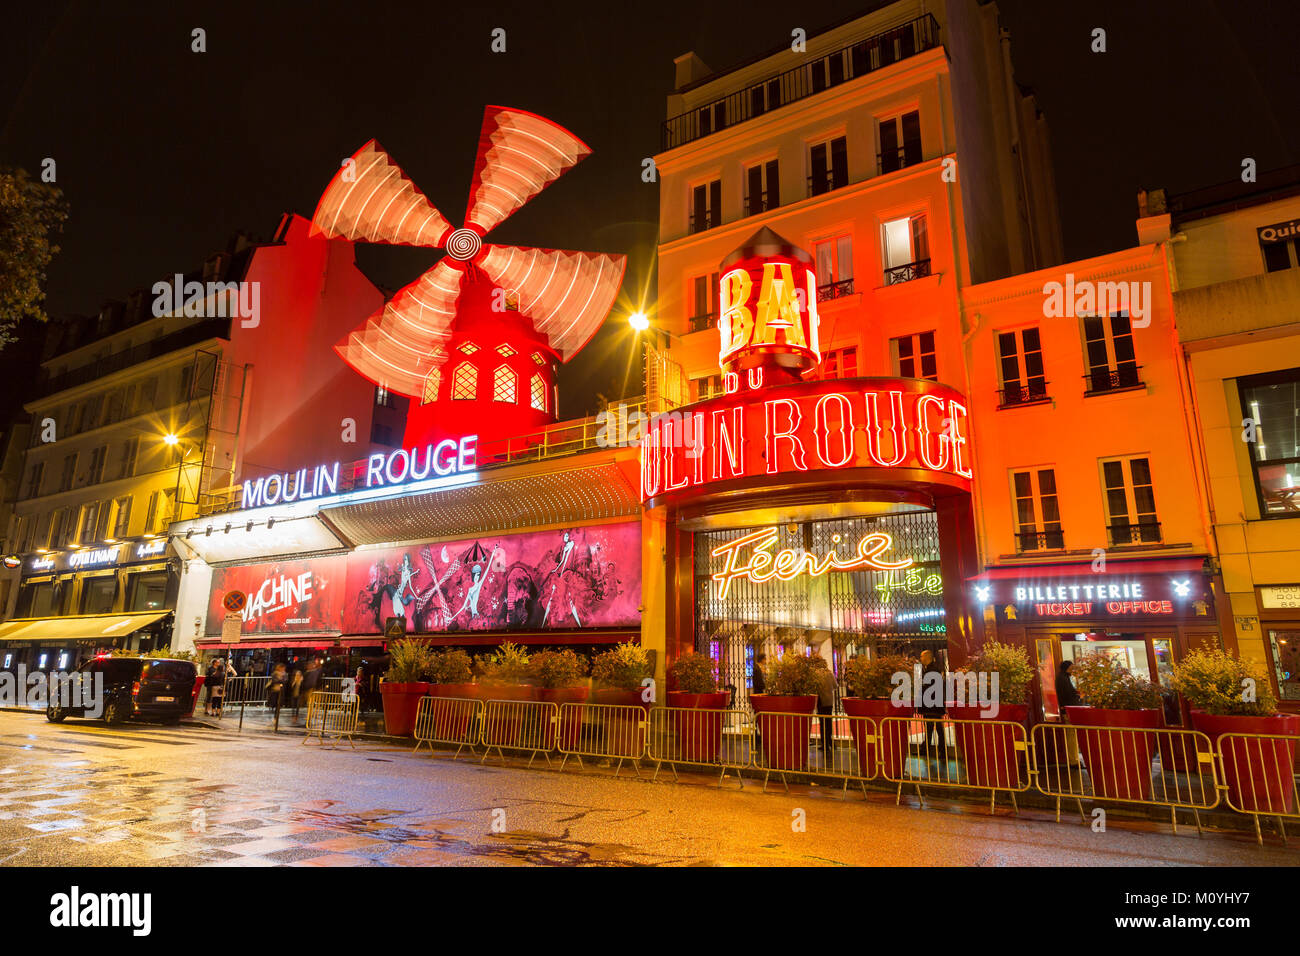 Variety Theatre Moulin Rouge by night,Montmartre,Paris,France - Stock Image